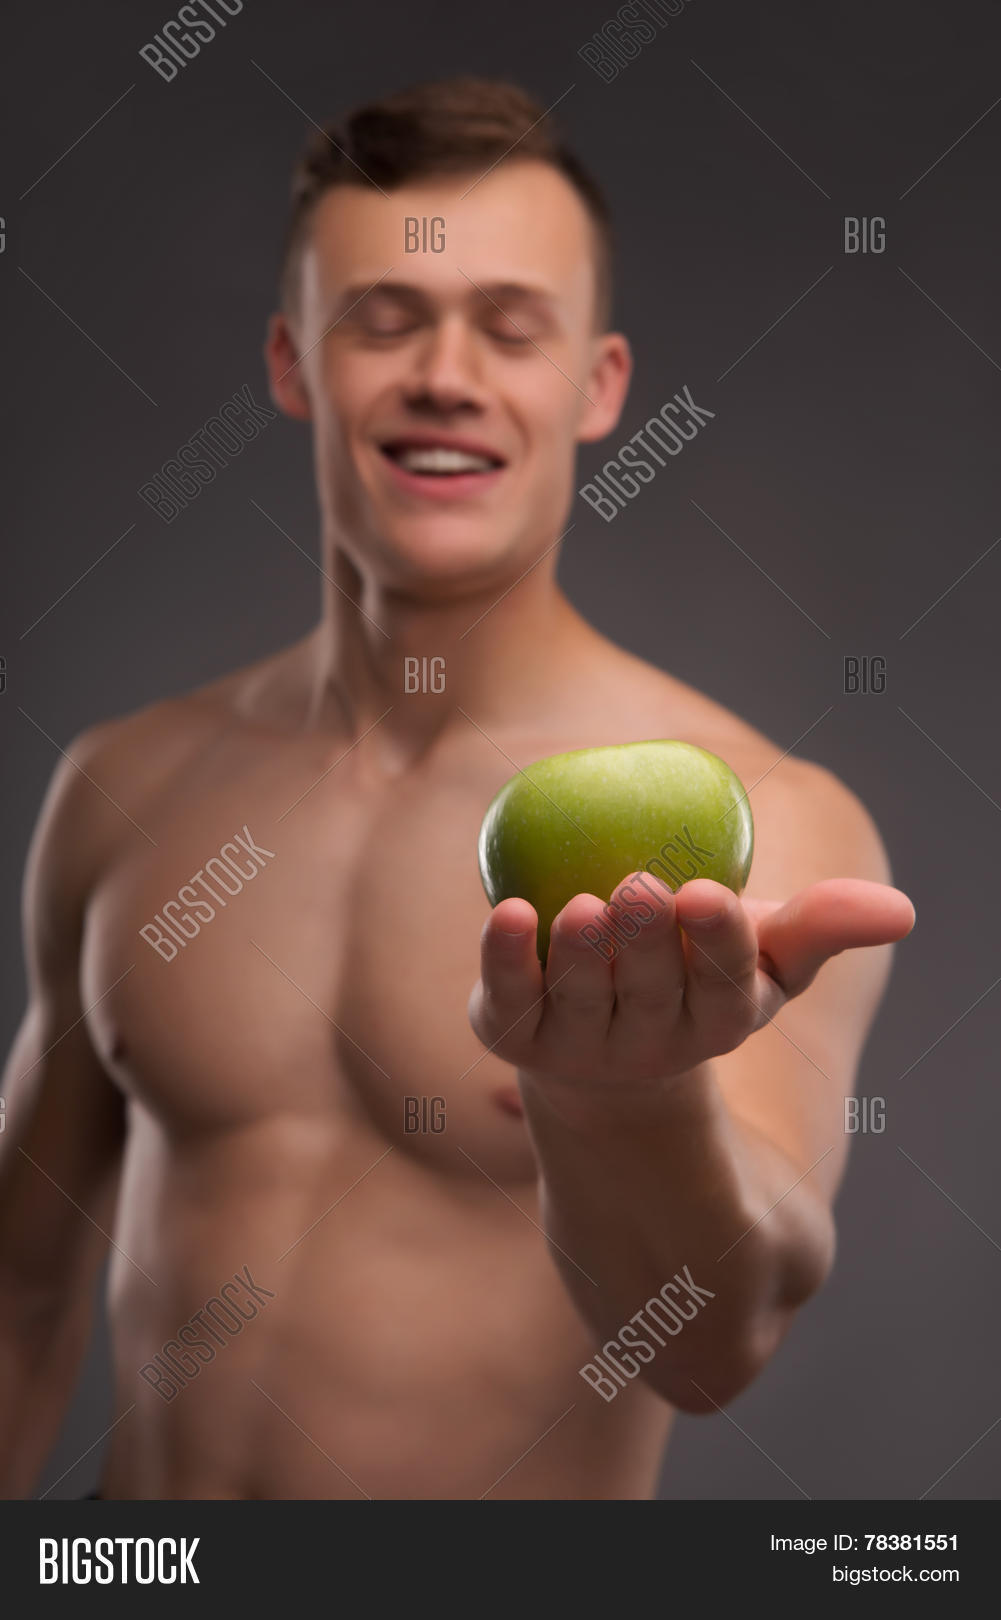 Selective focus on the delicious green apple lying on the palm of the young handsome smiling fair-haired bare-chested karate enthusiast standing on background